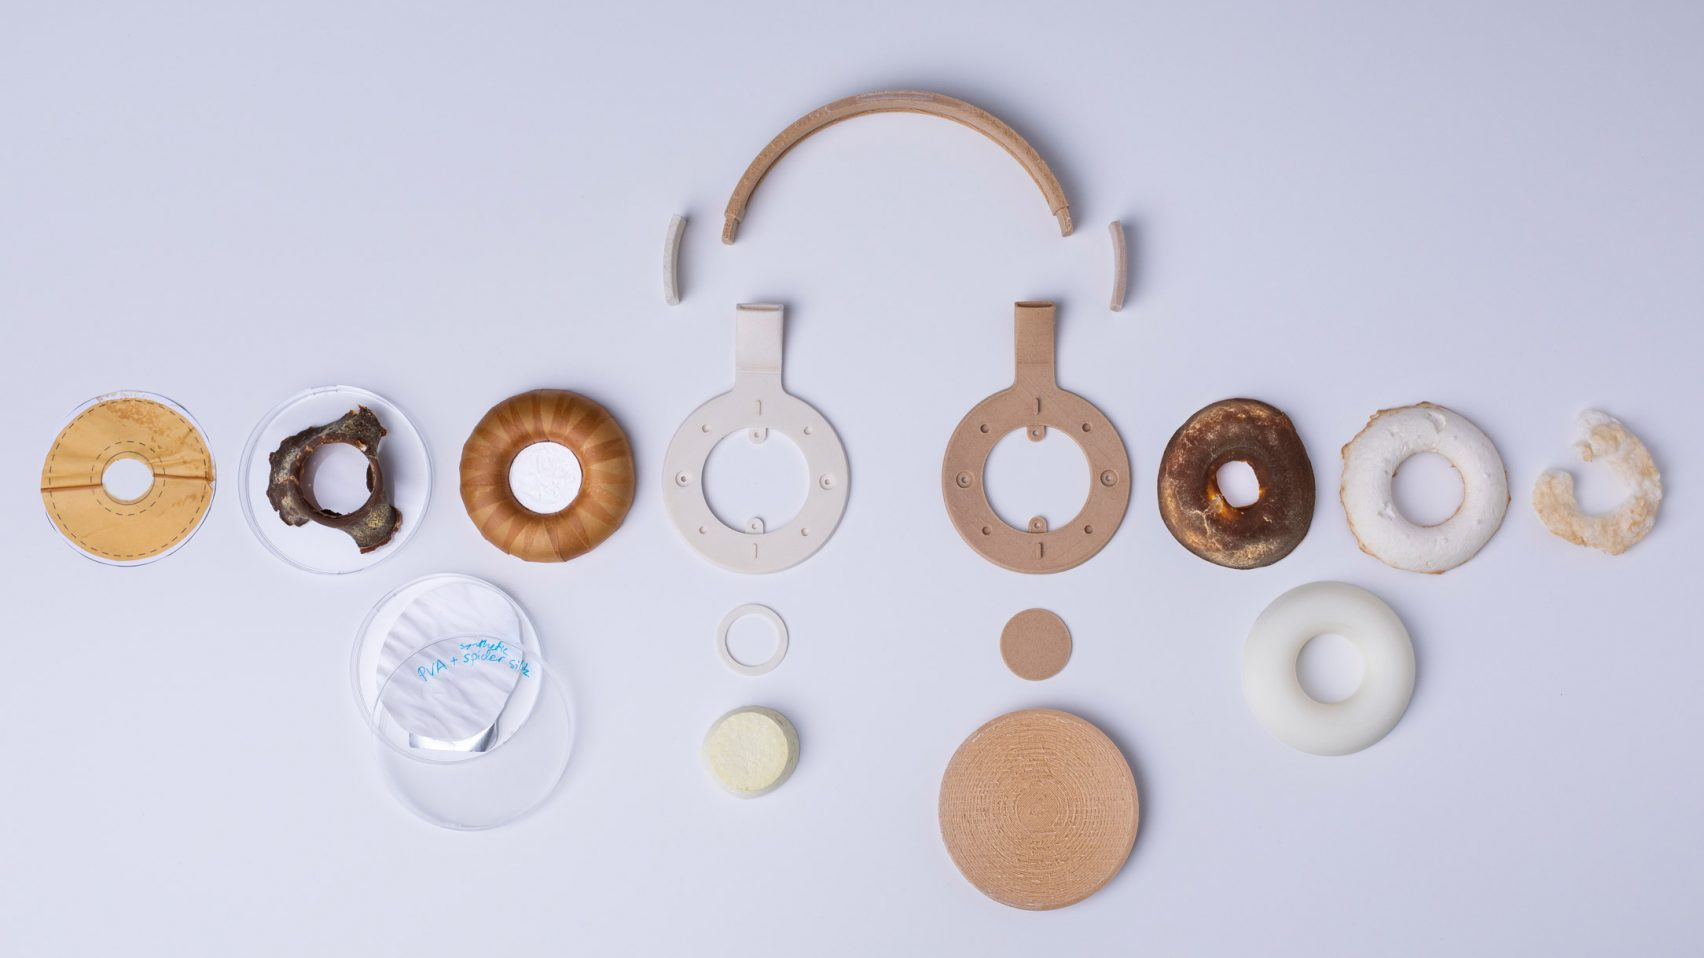 korvaa-headphones-aivan-grown-fungus-yeast-_dezeen_2364_hero_1-1704x958.jpg